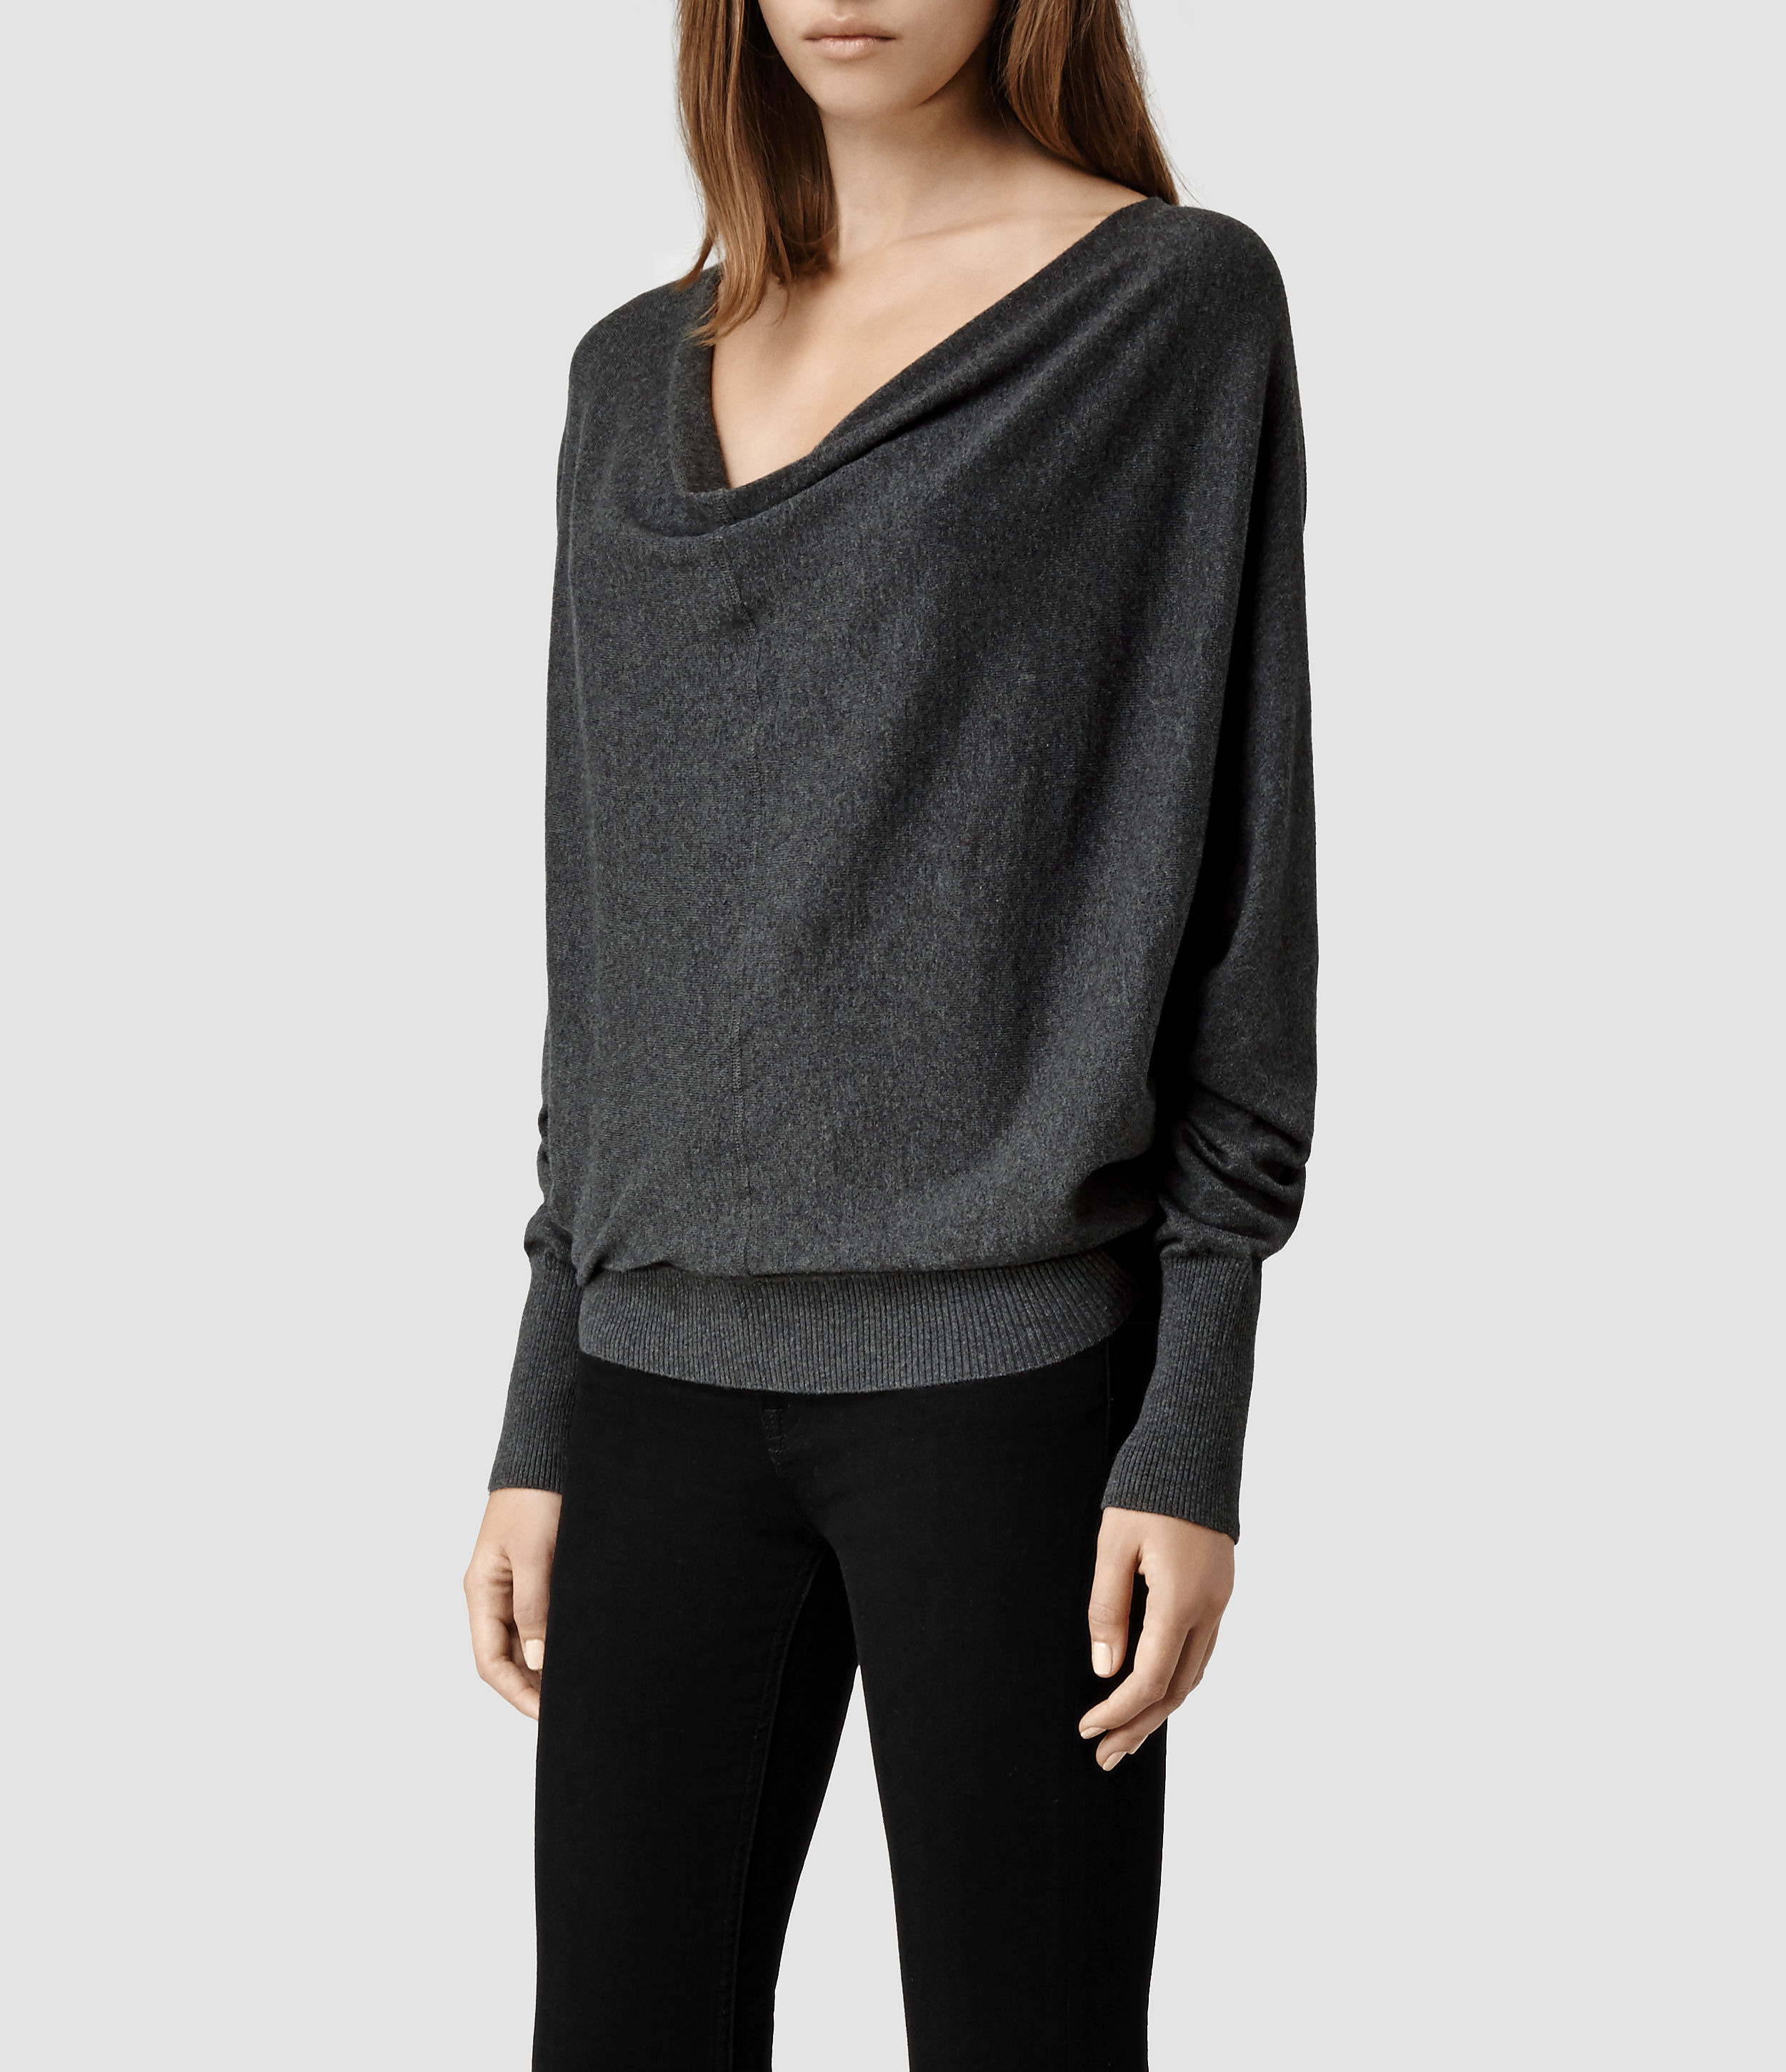 Allsaints Elgar Cowl Neck Sweater in Gray | Lyst